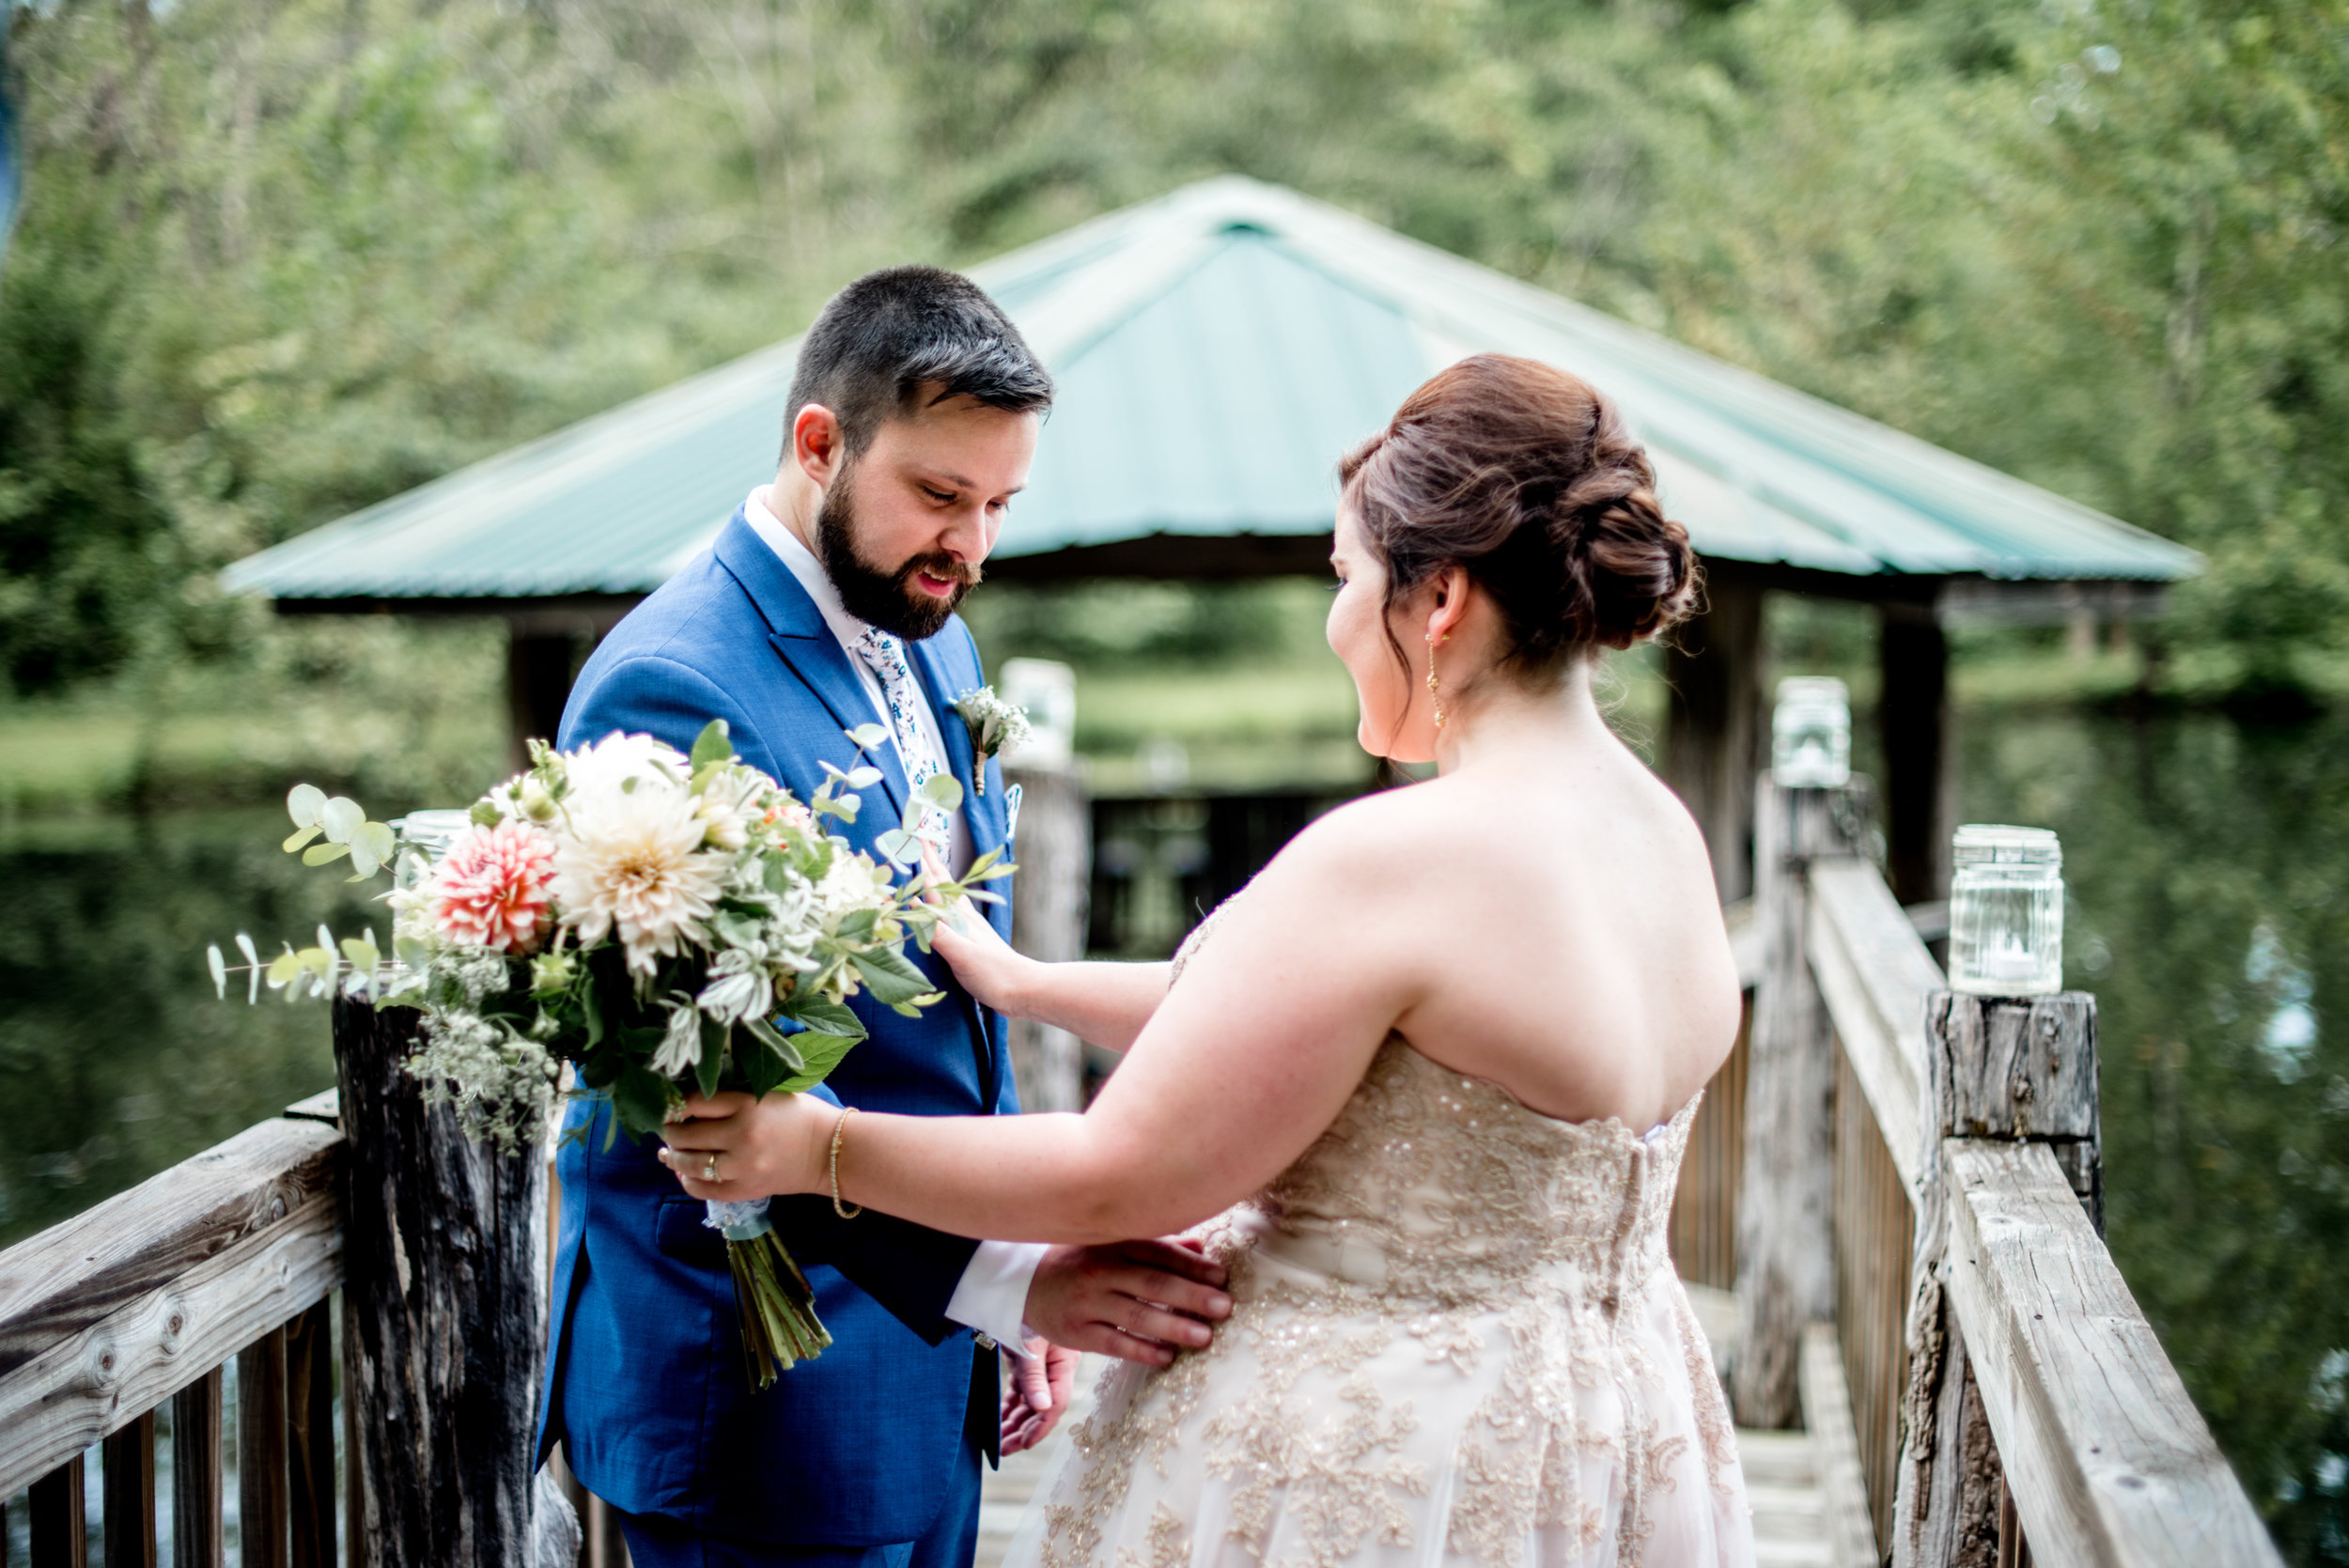 Romantic first look on scenic bridge over pond with rustic gazebo